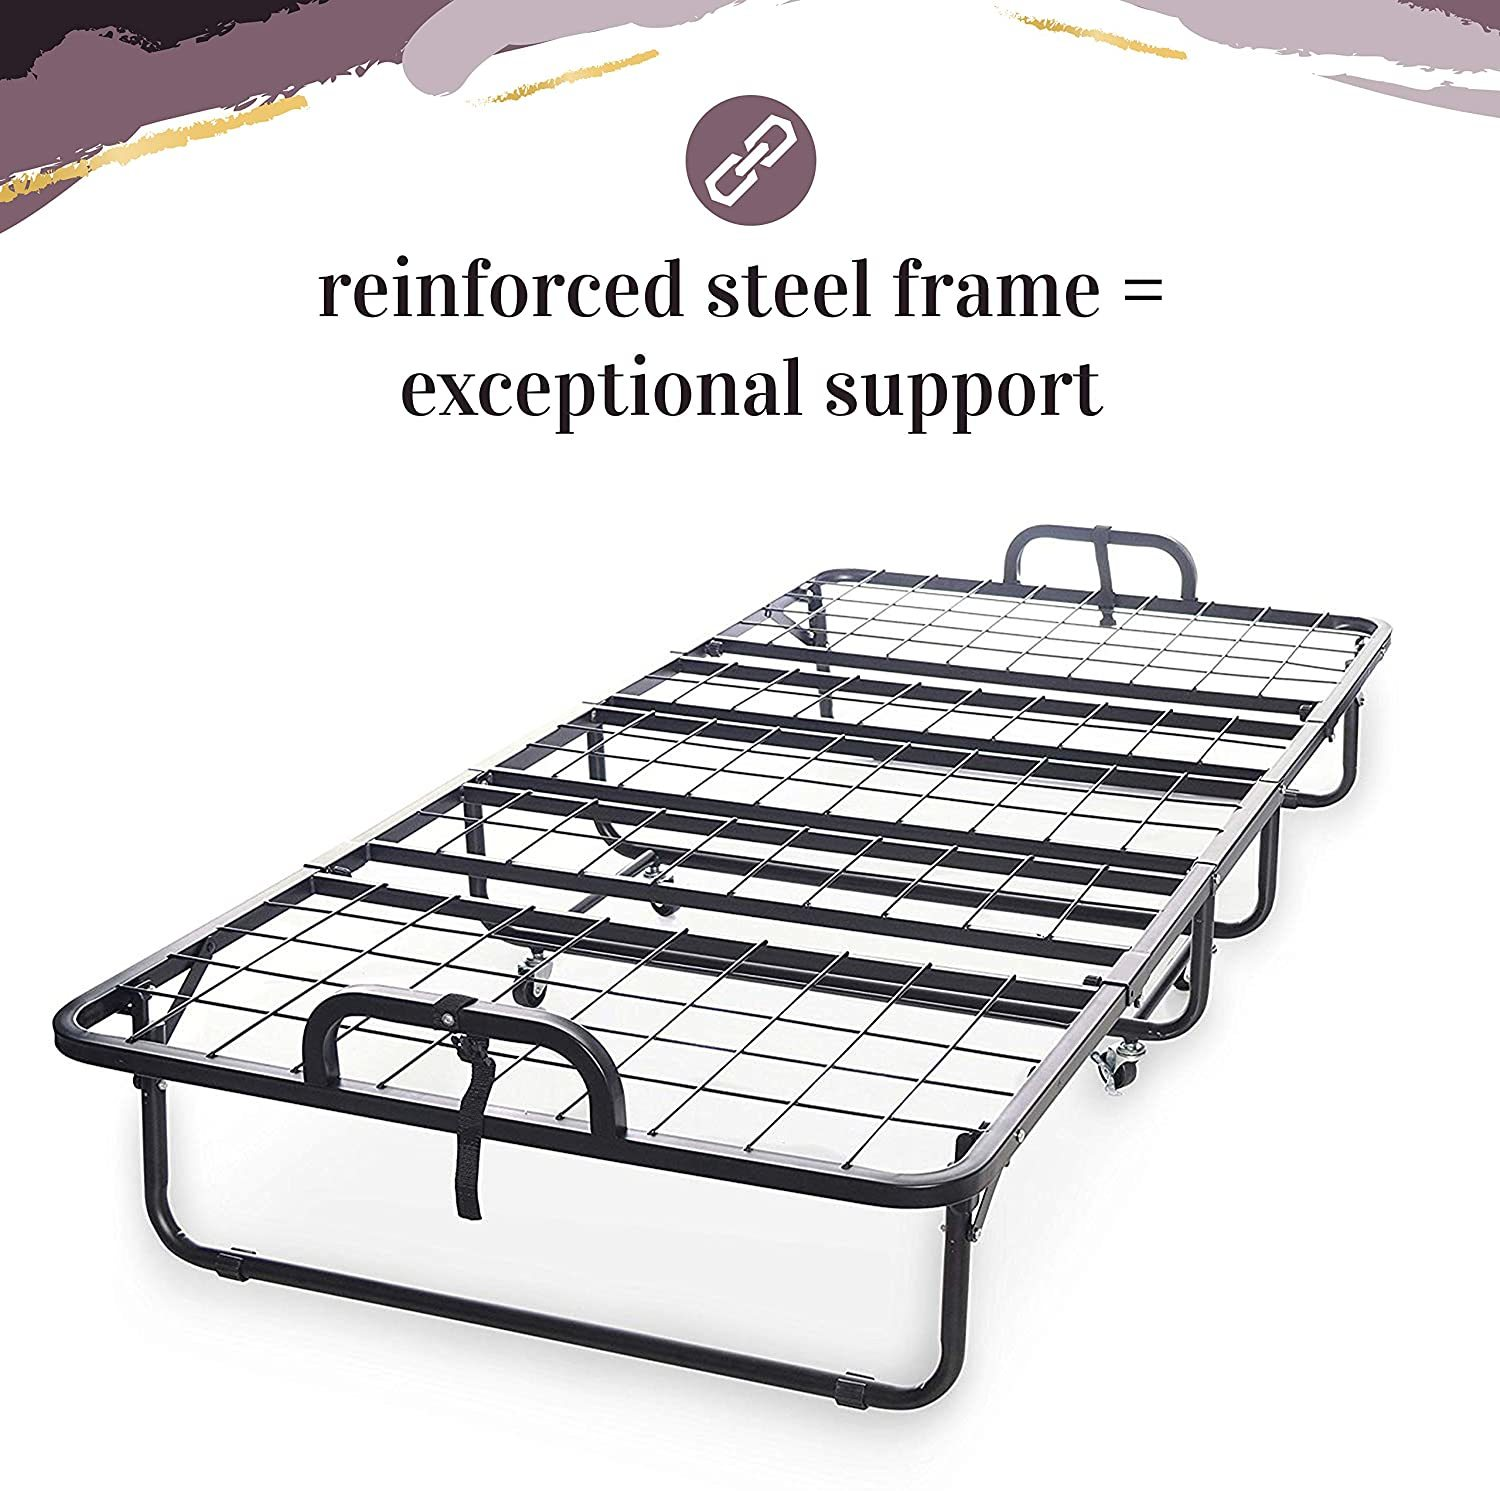 Milliard Diplomat Folding Bed - Construction